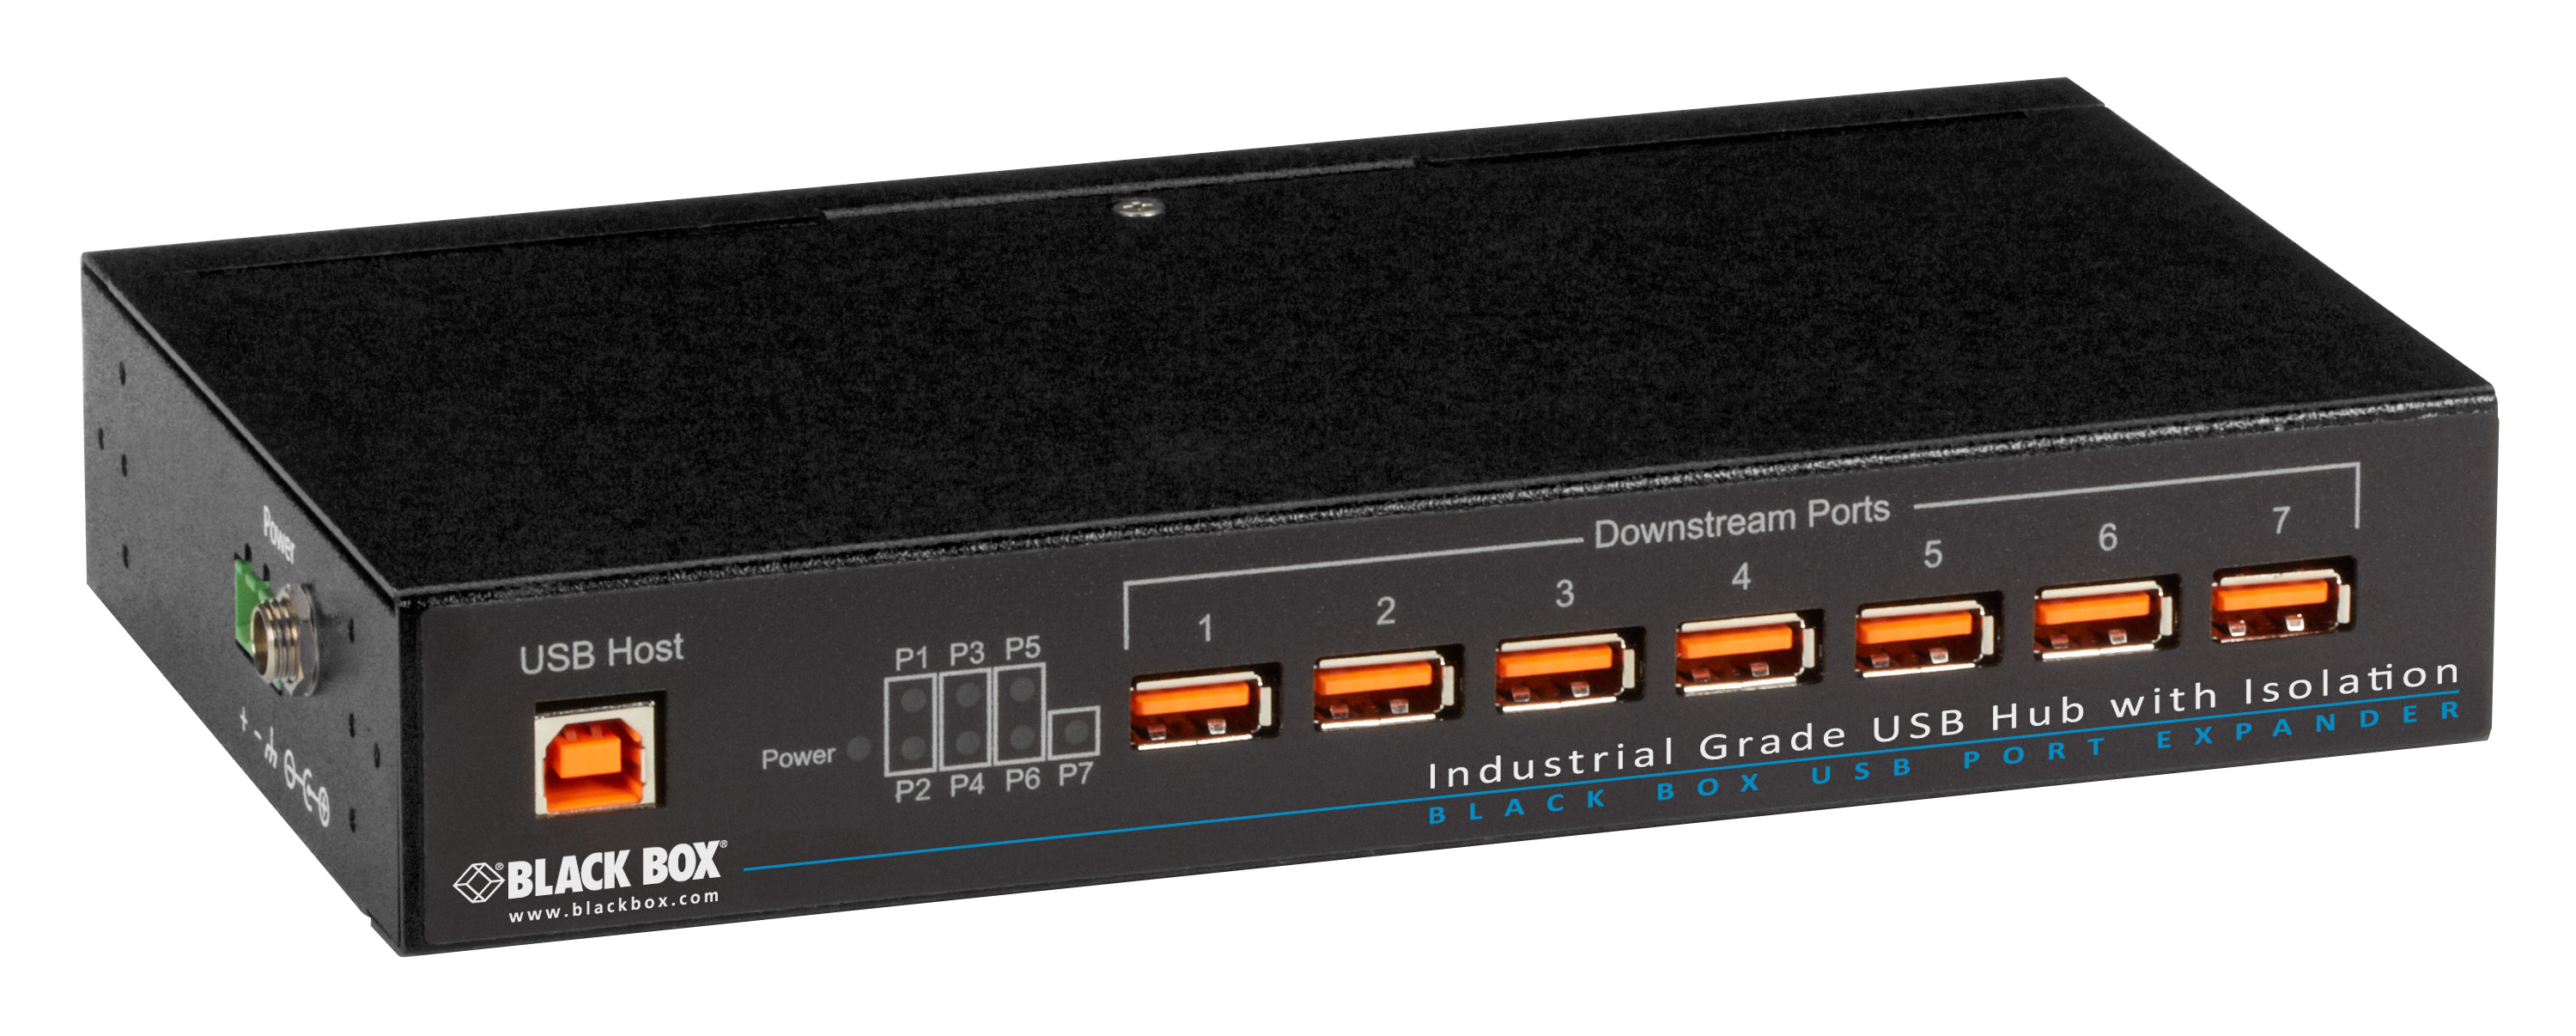 7 port USB 2.0 hub industrial with isolation